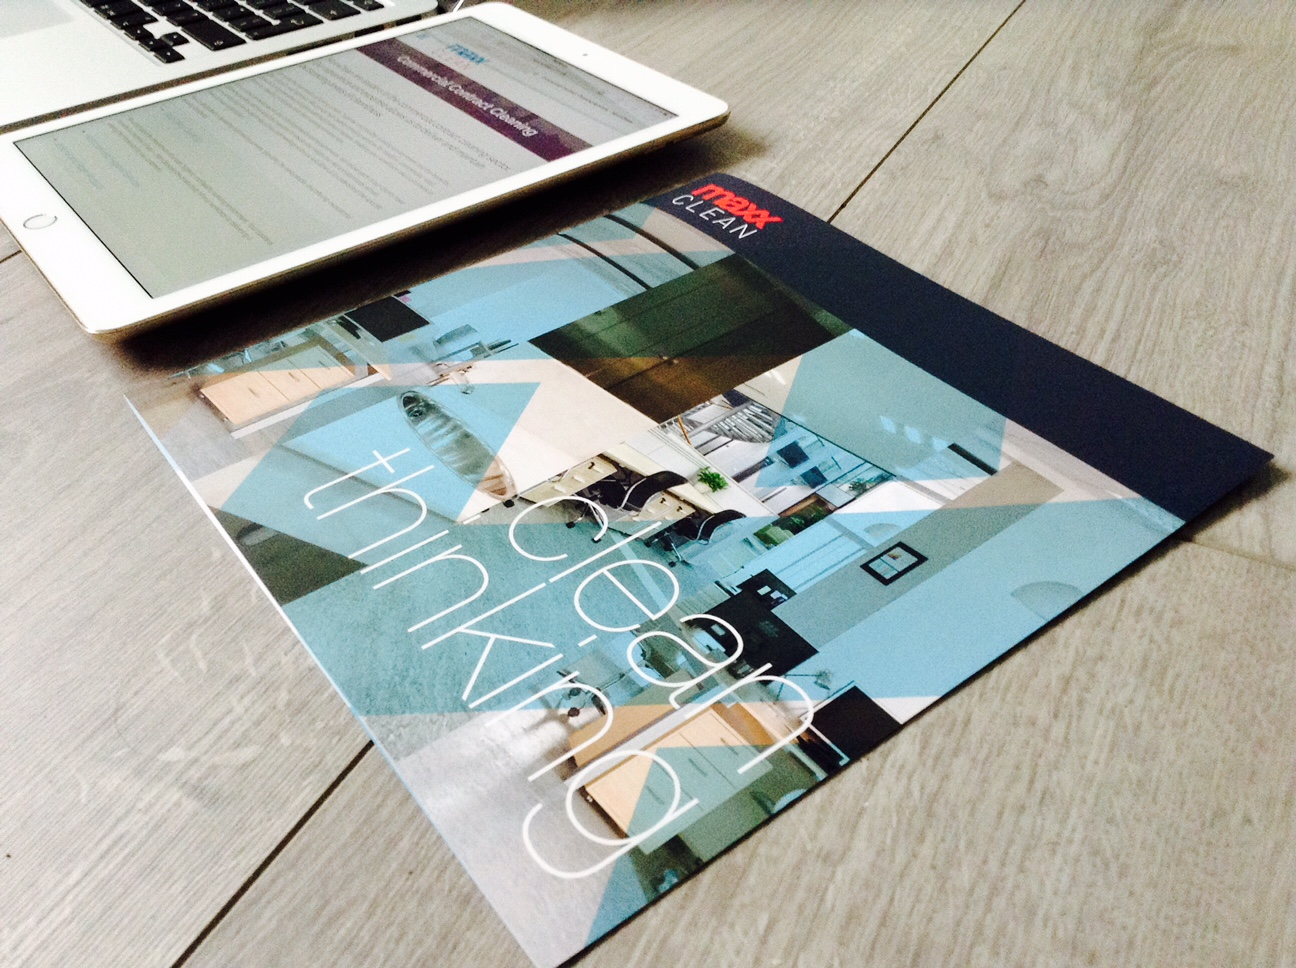 Maxxclean Web And Print Design From Levelone Creative